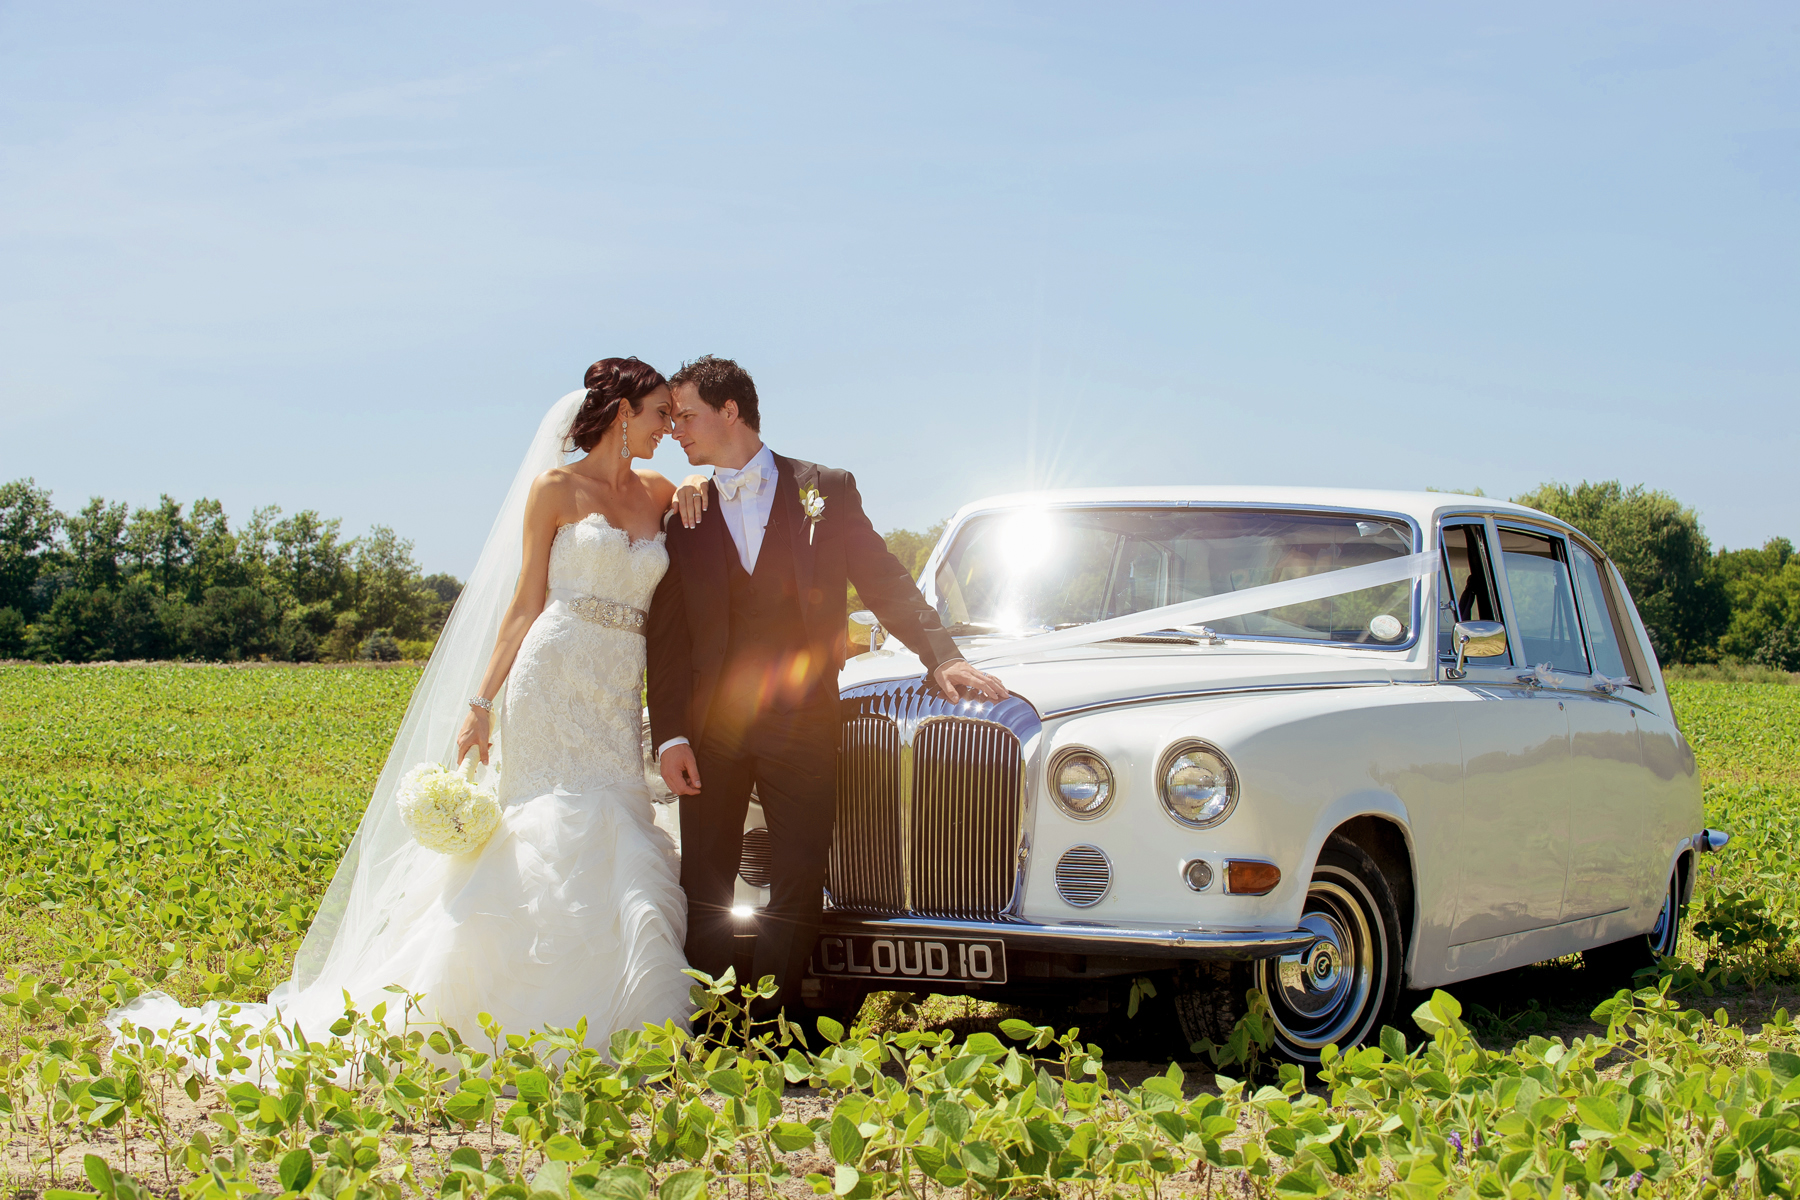 MODERN VISION PHOTOGRAPHY - WEDDING PHOTOGRAPHY 2073